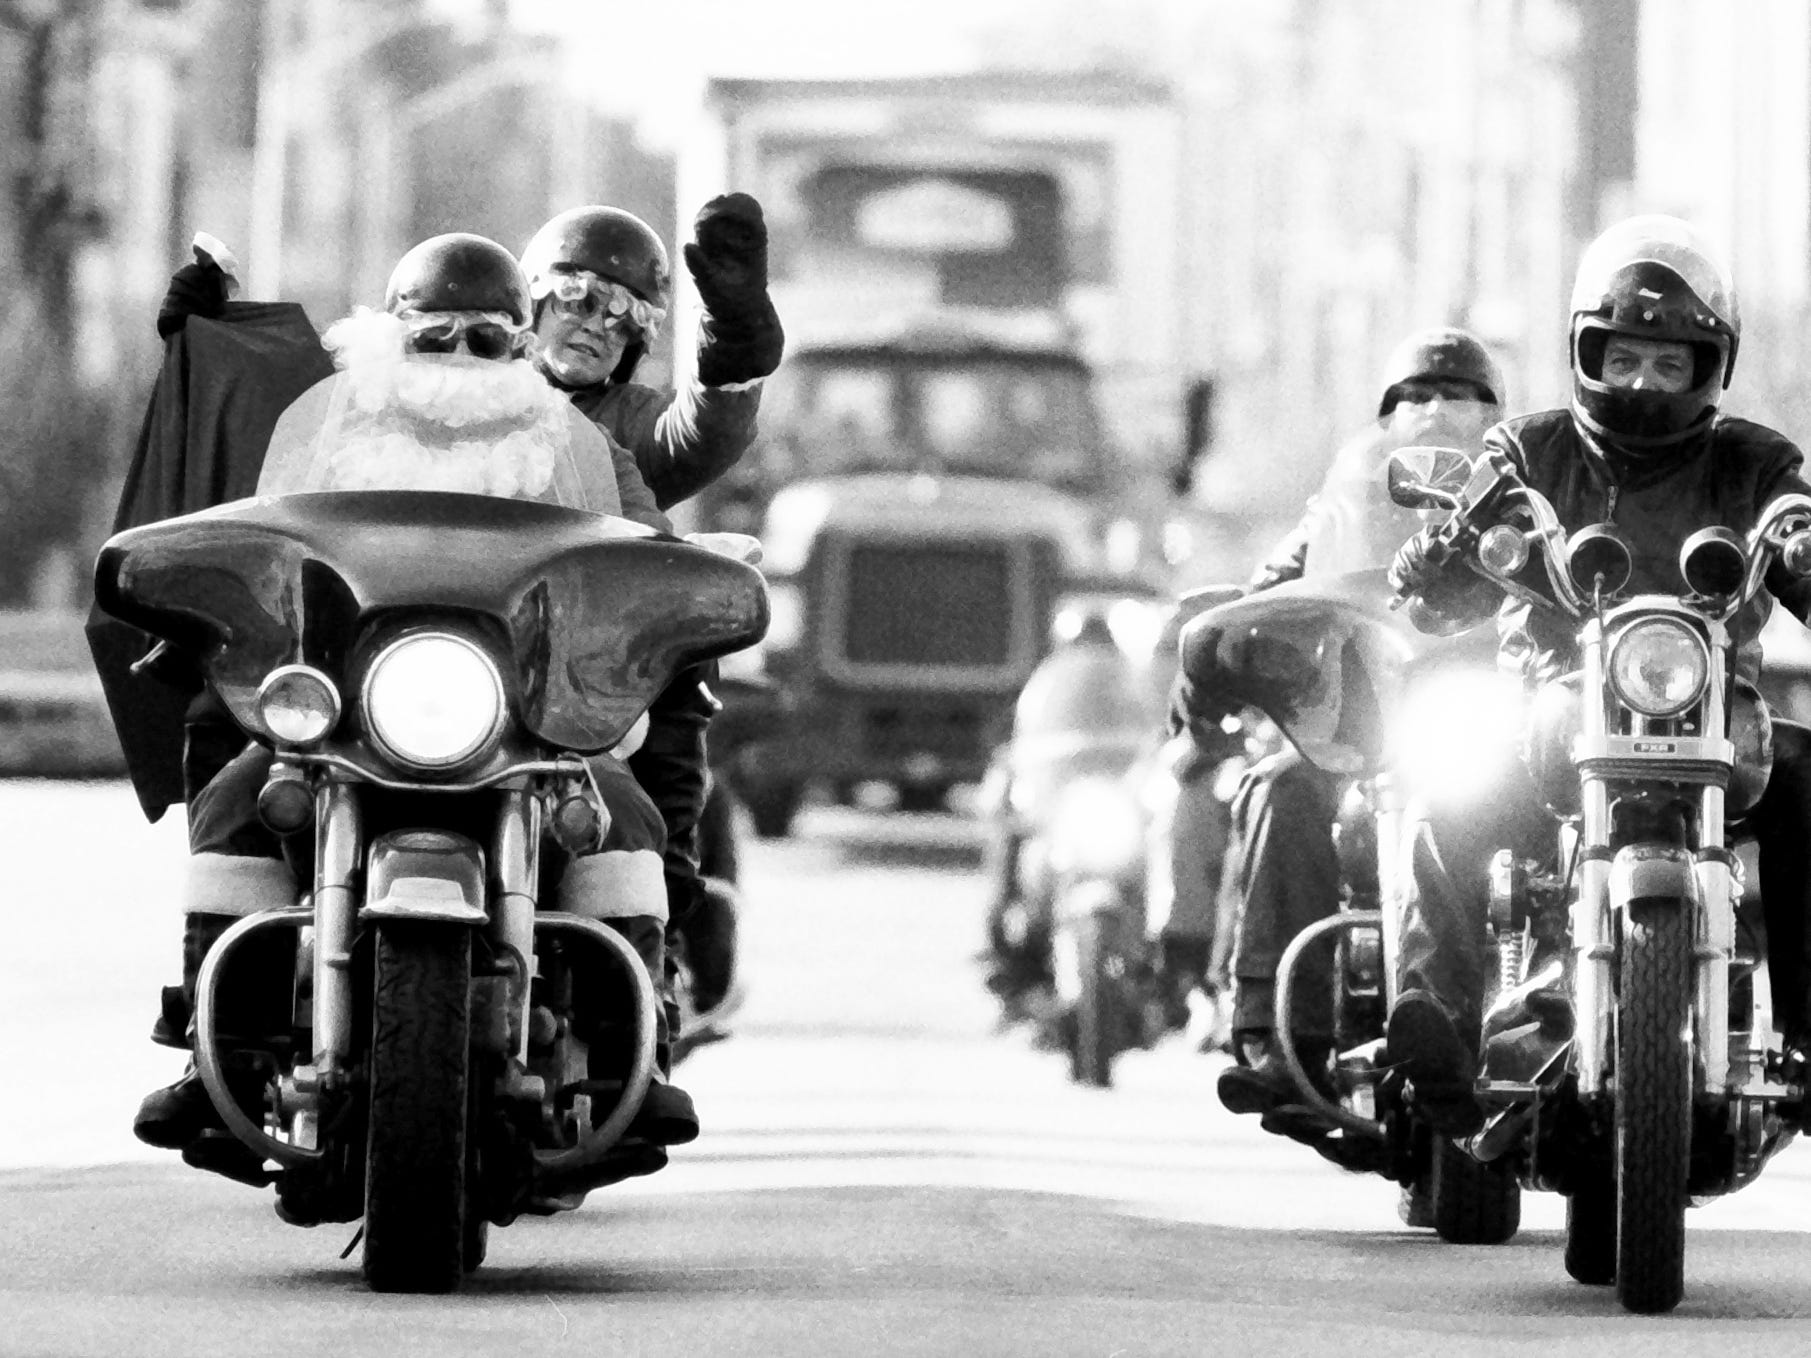 In 1985, Santa rode through the streets on a Harley.